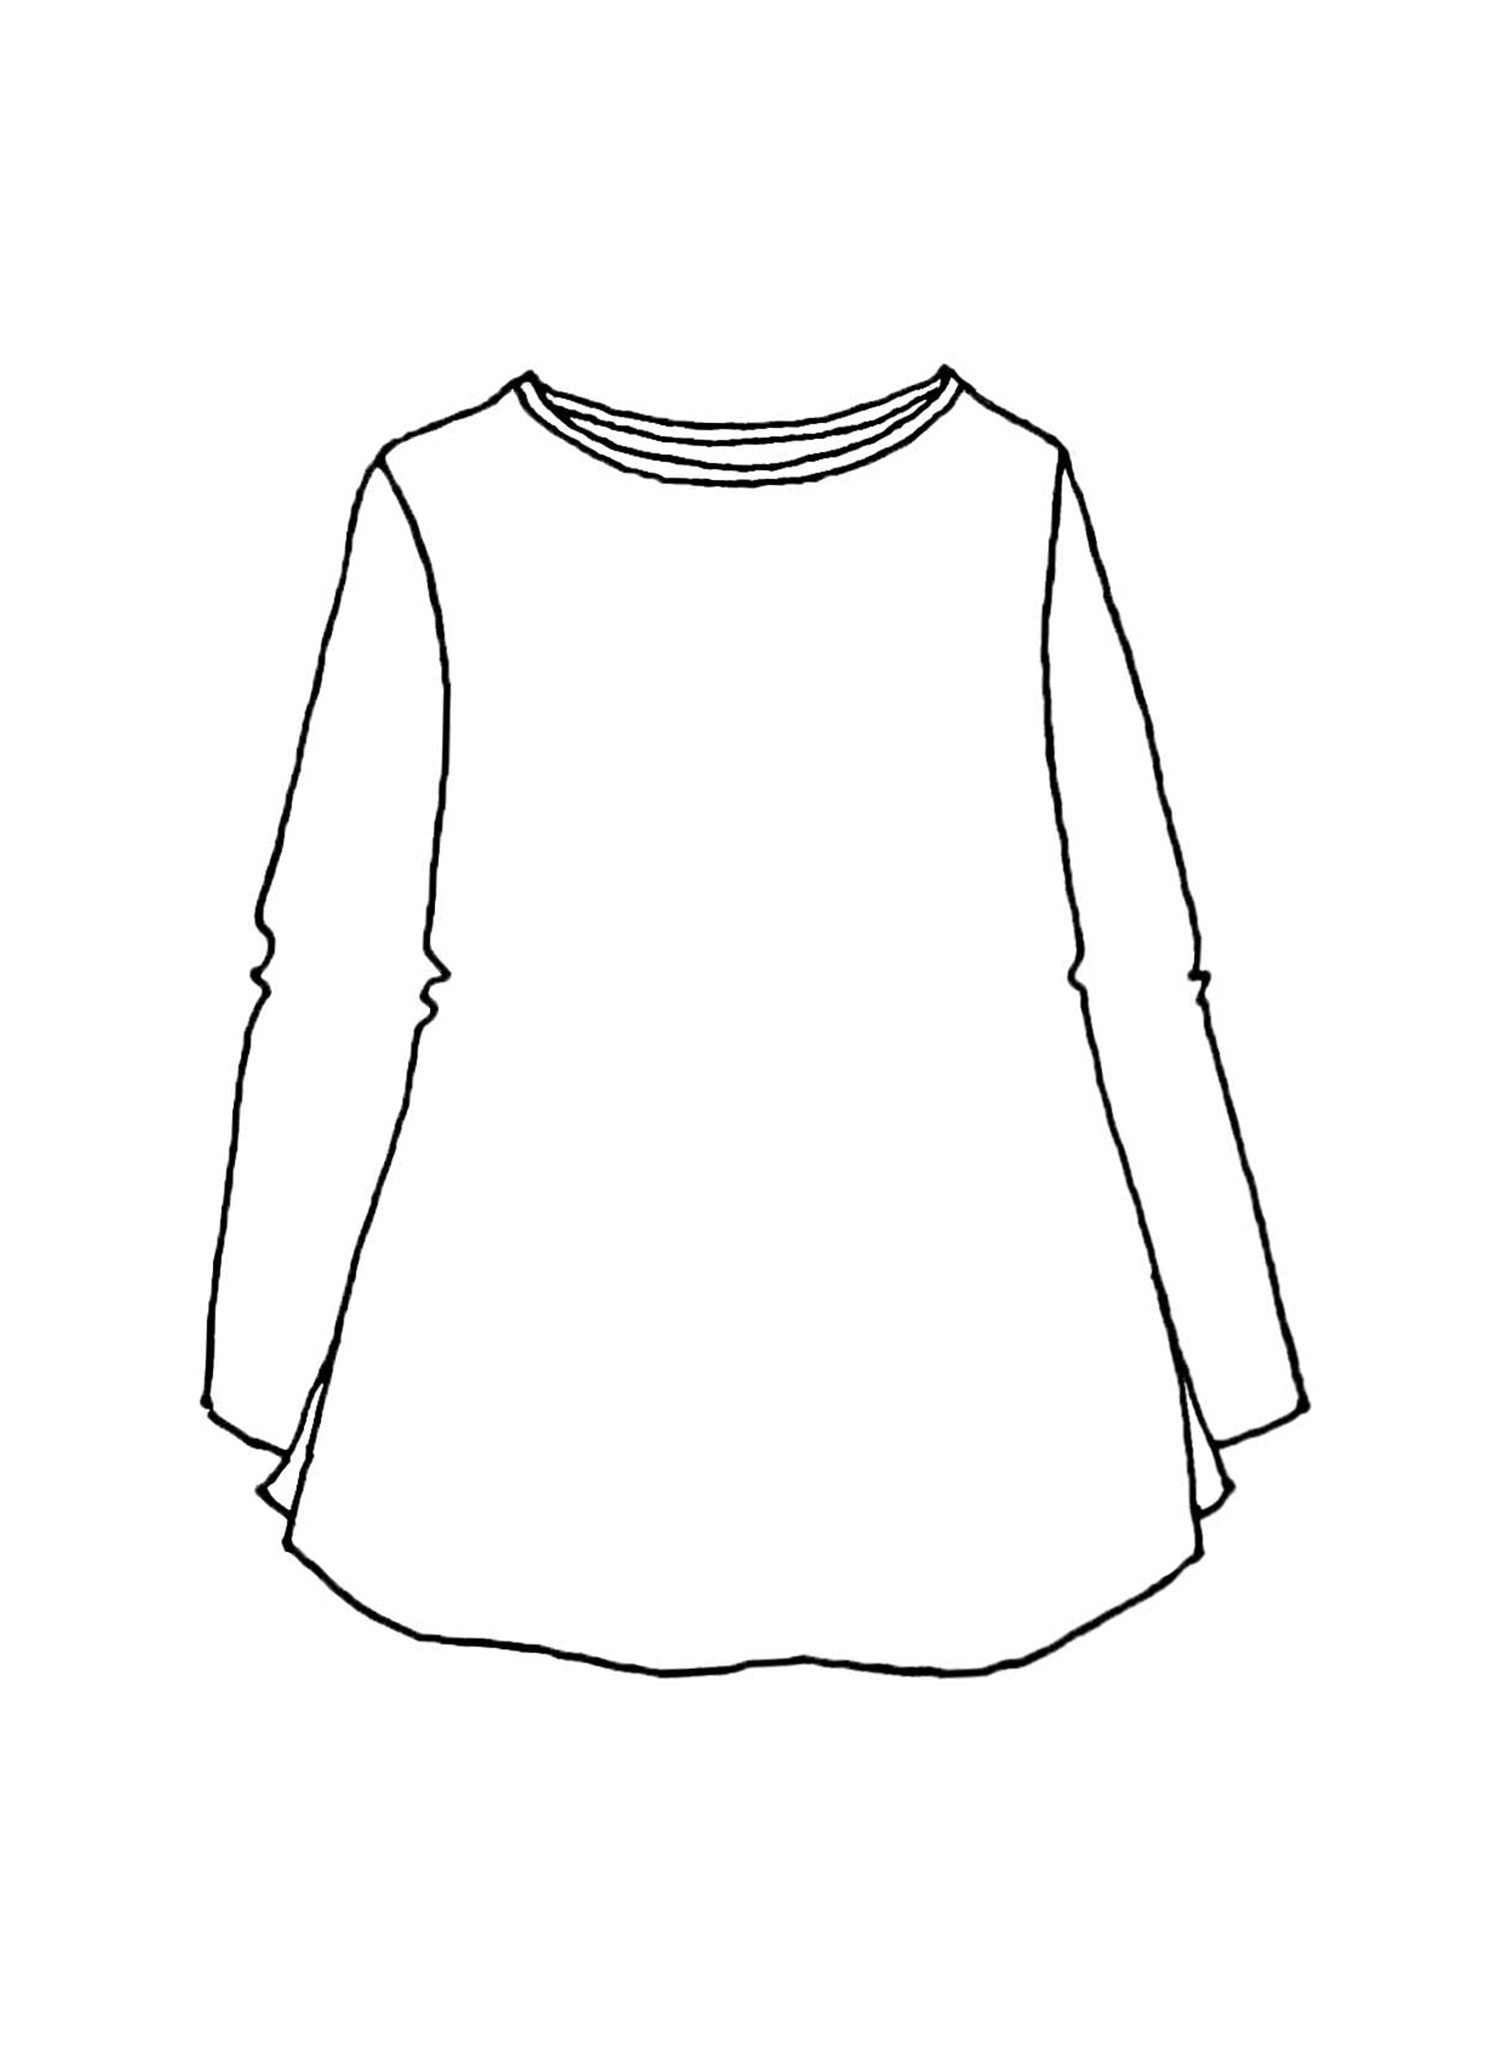 Split Tunic sketch image